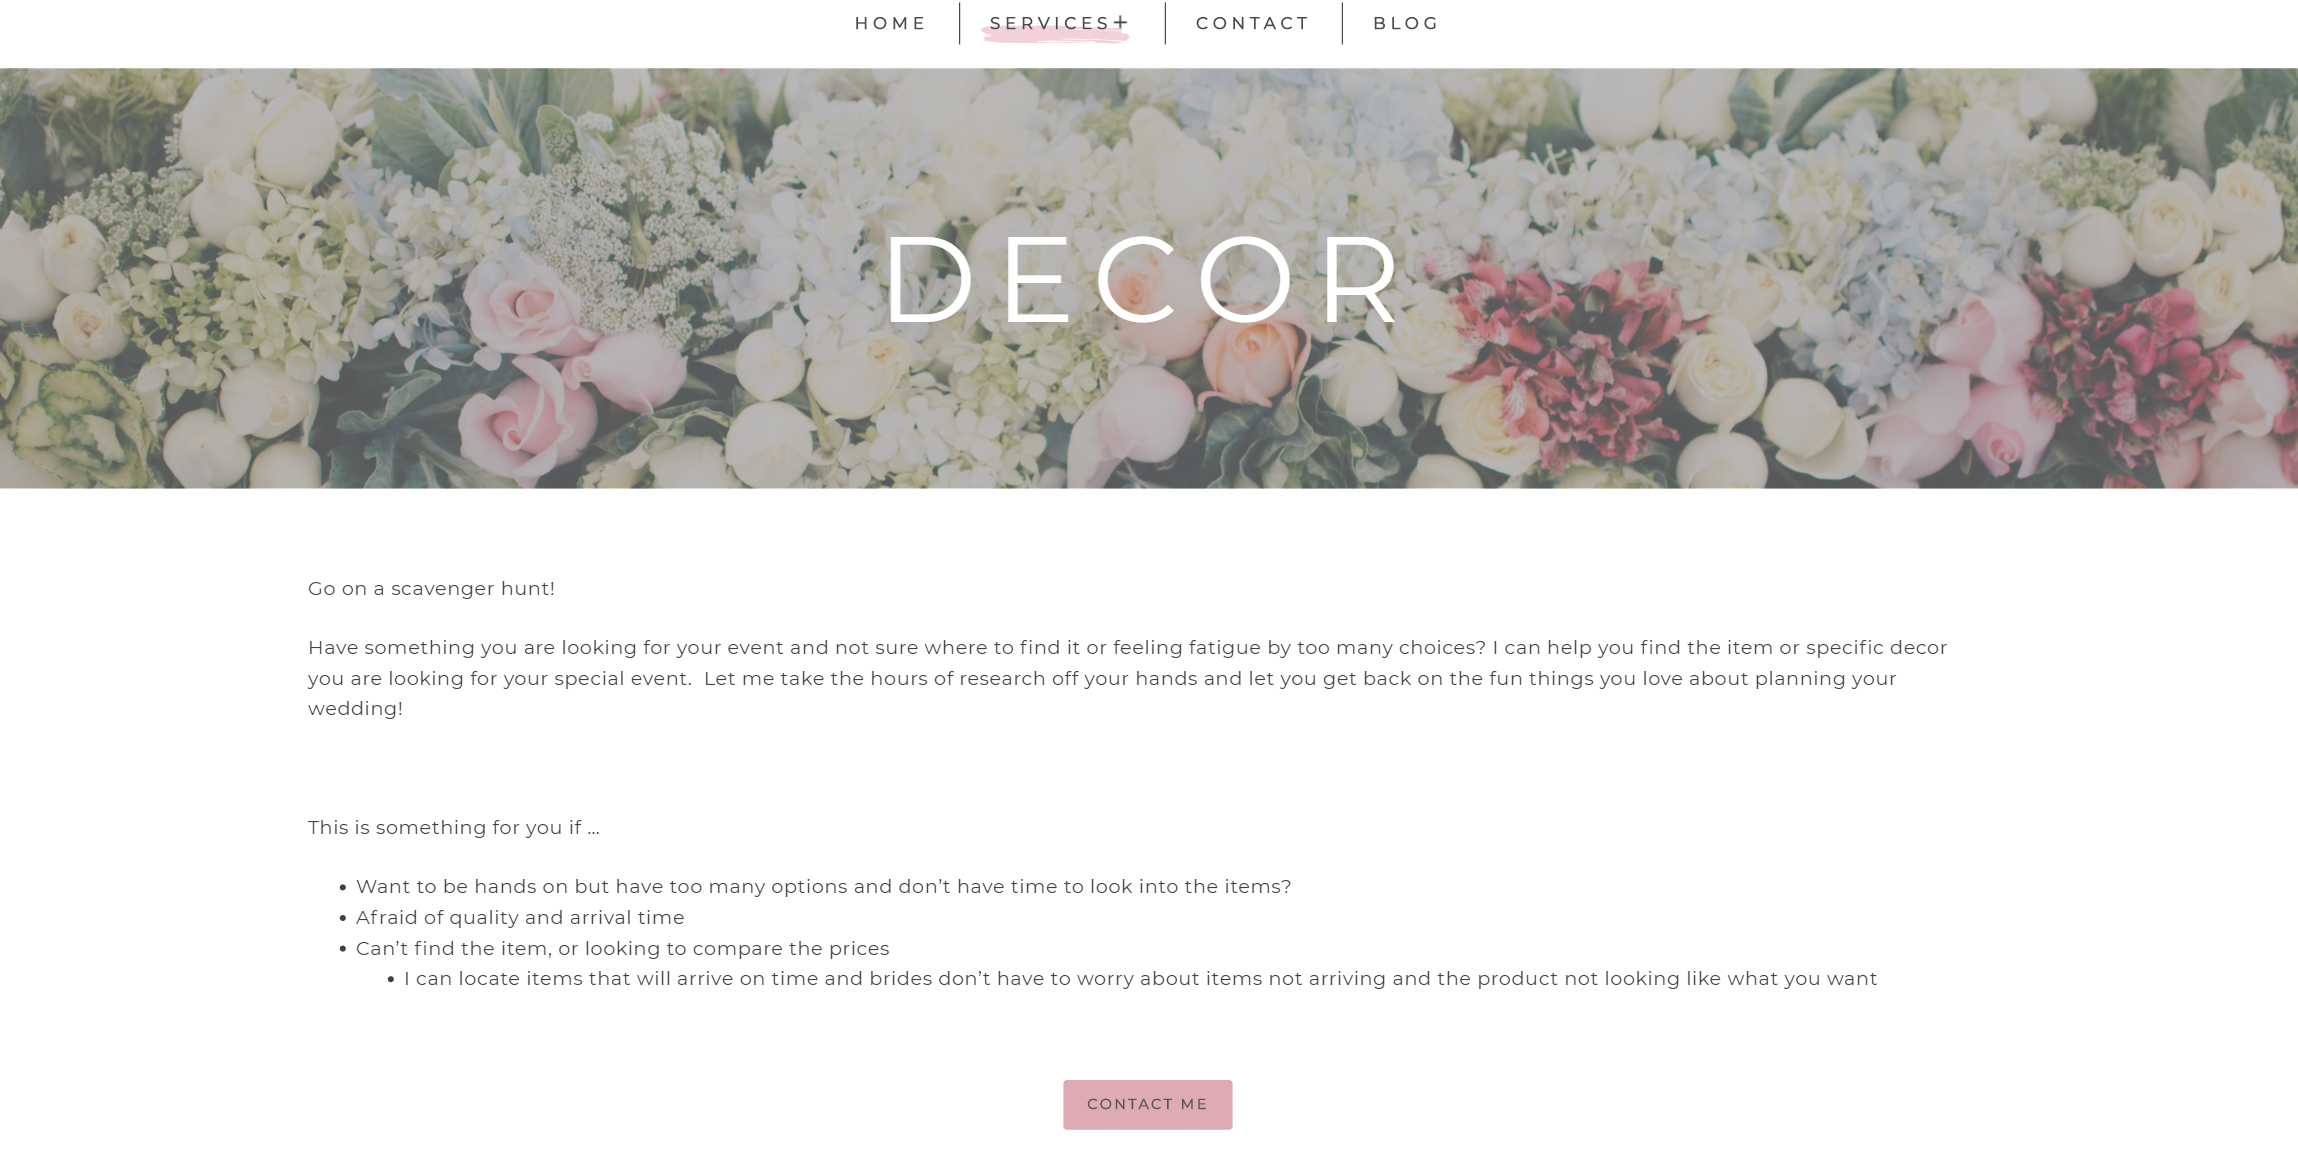 Merry Me decor services page